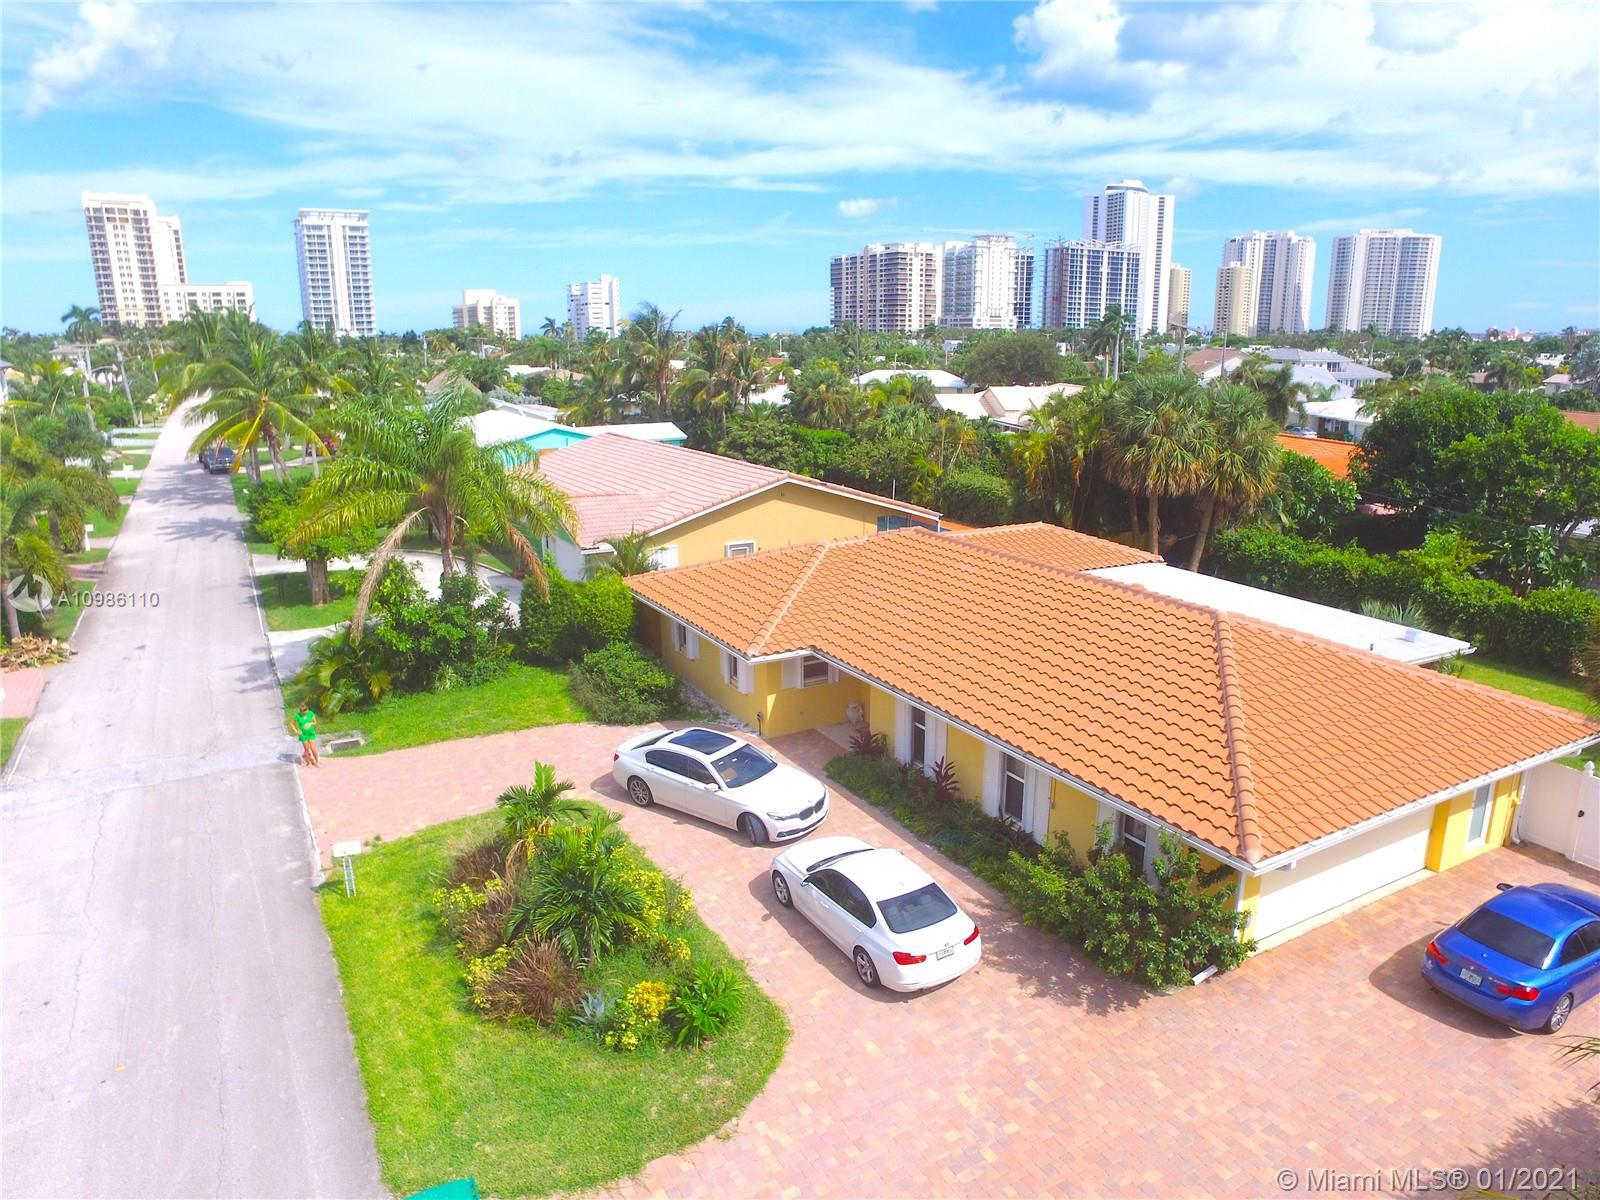 NEW PICTURES on 1/30/2021. Showings after 1/30/2021.  Location location - Singer island! Walk to th